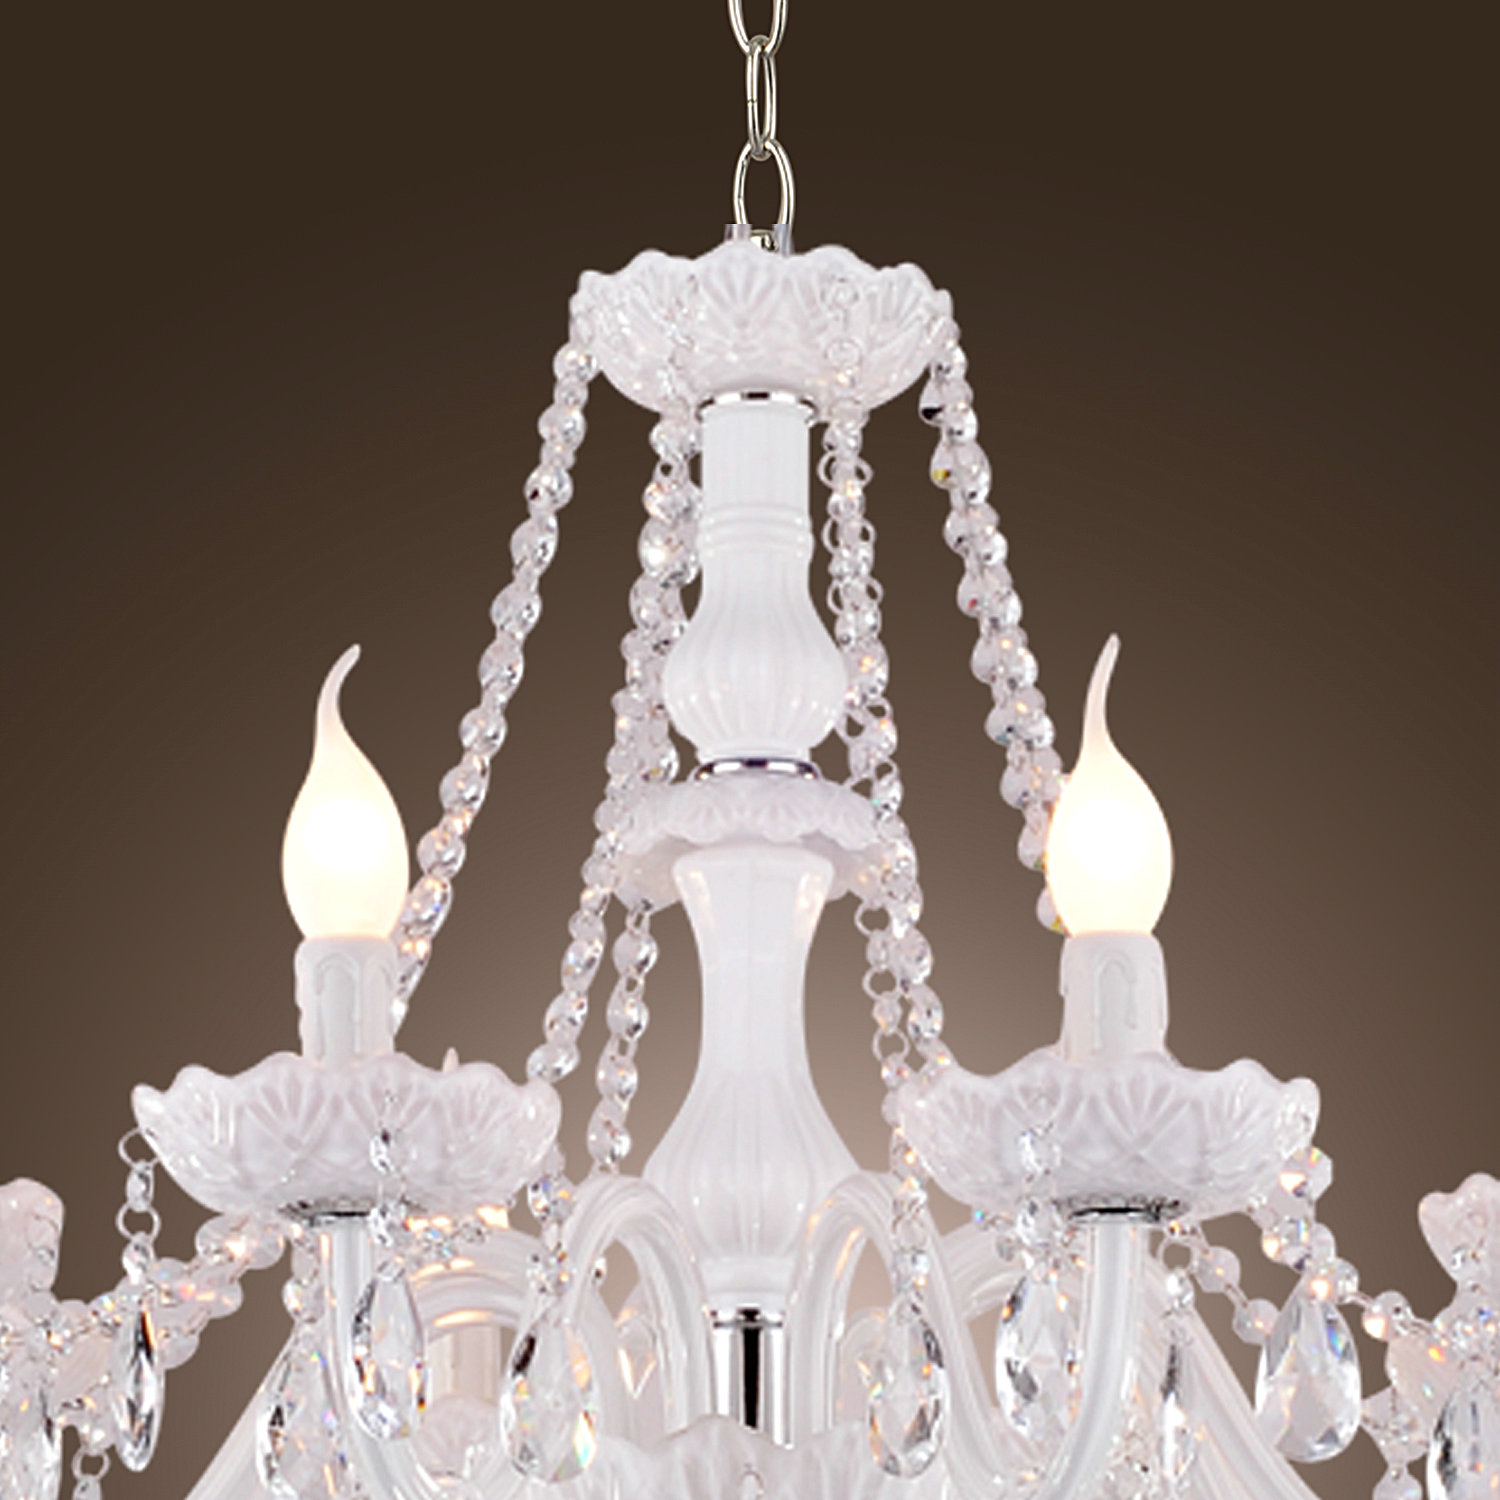 Candle Light Fixture: 8 Arms White Crystal Chandelier Candle-Light Pendant